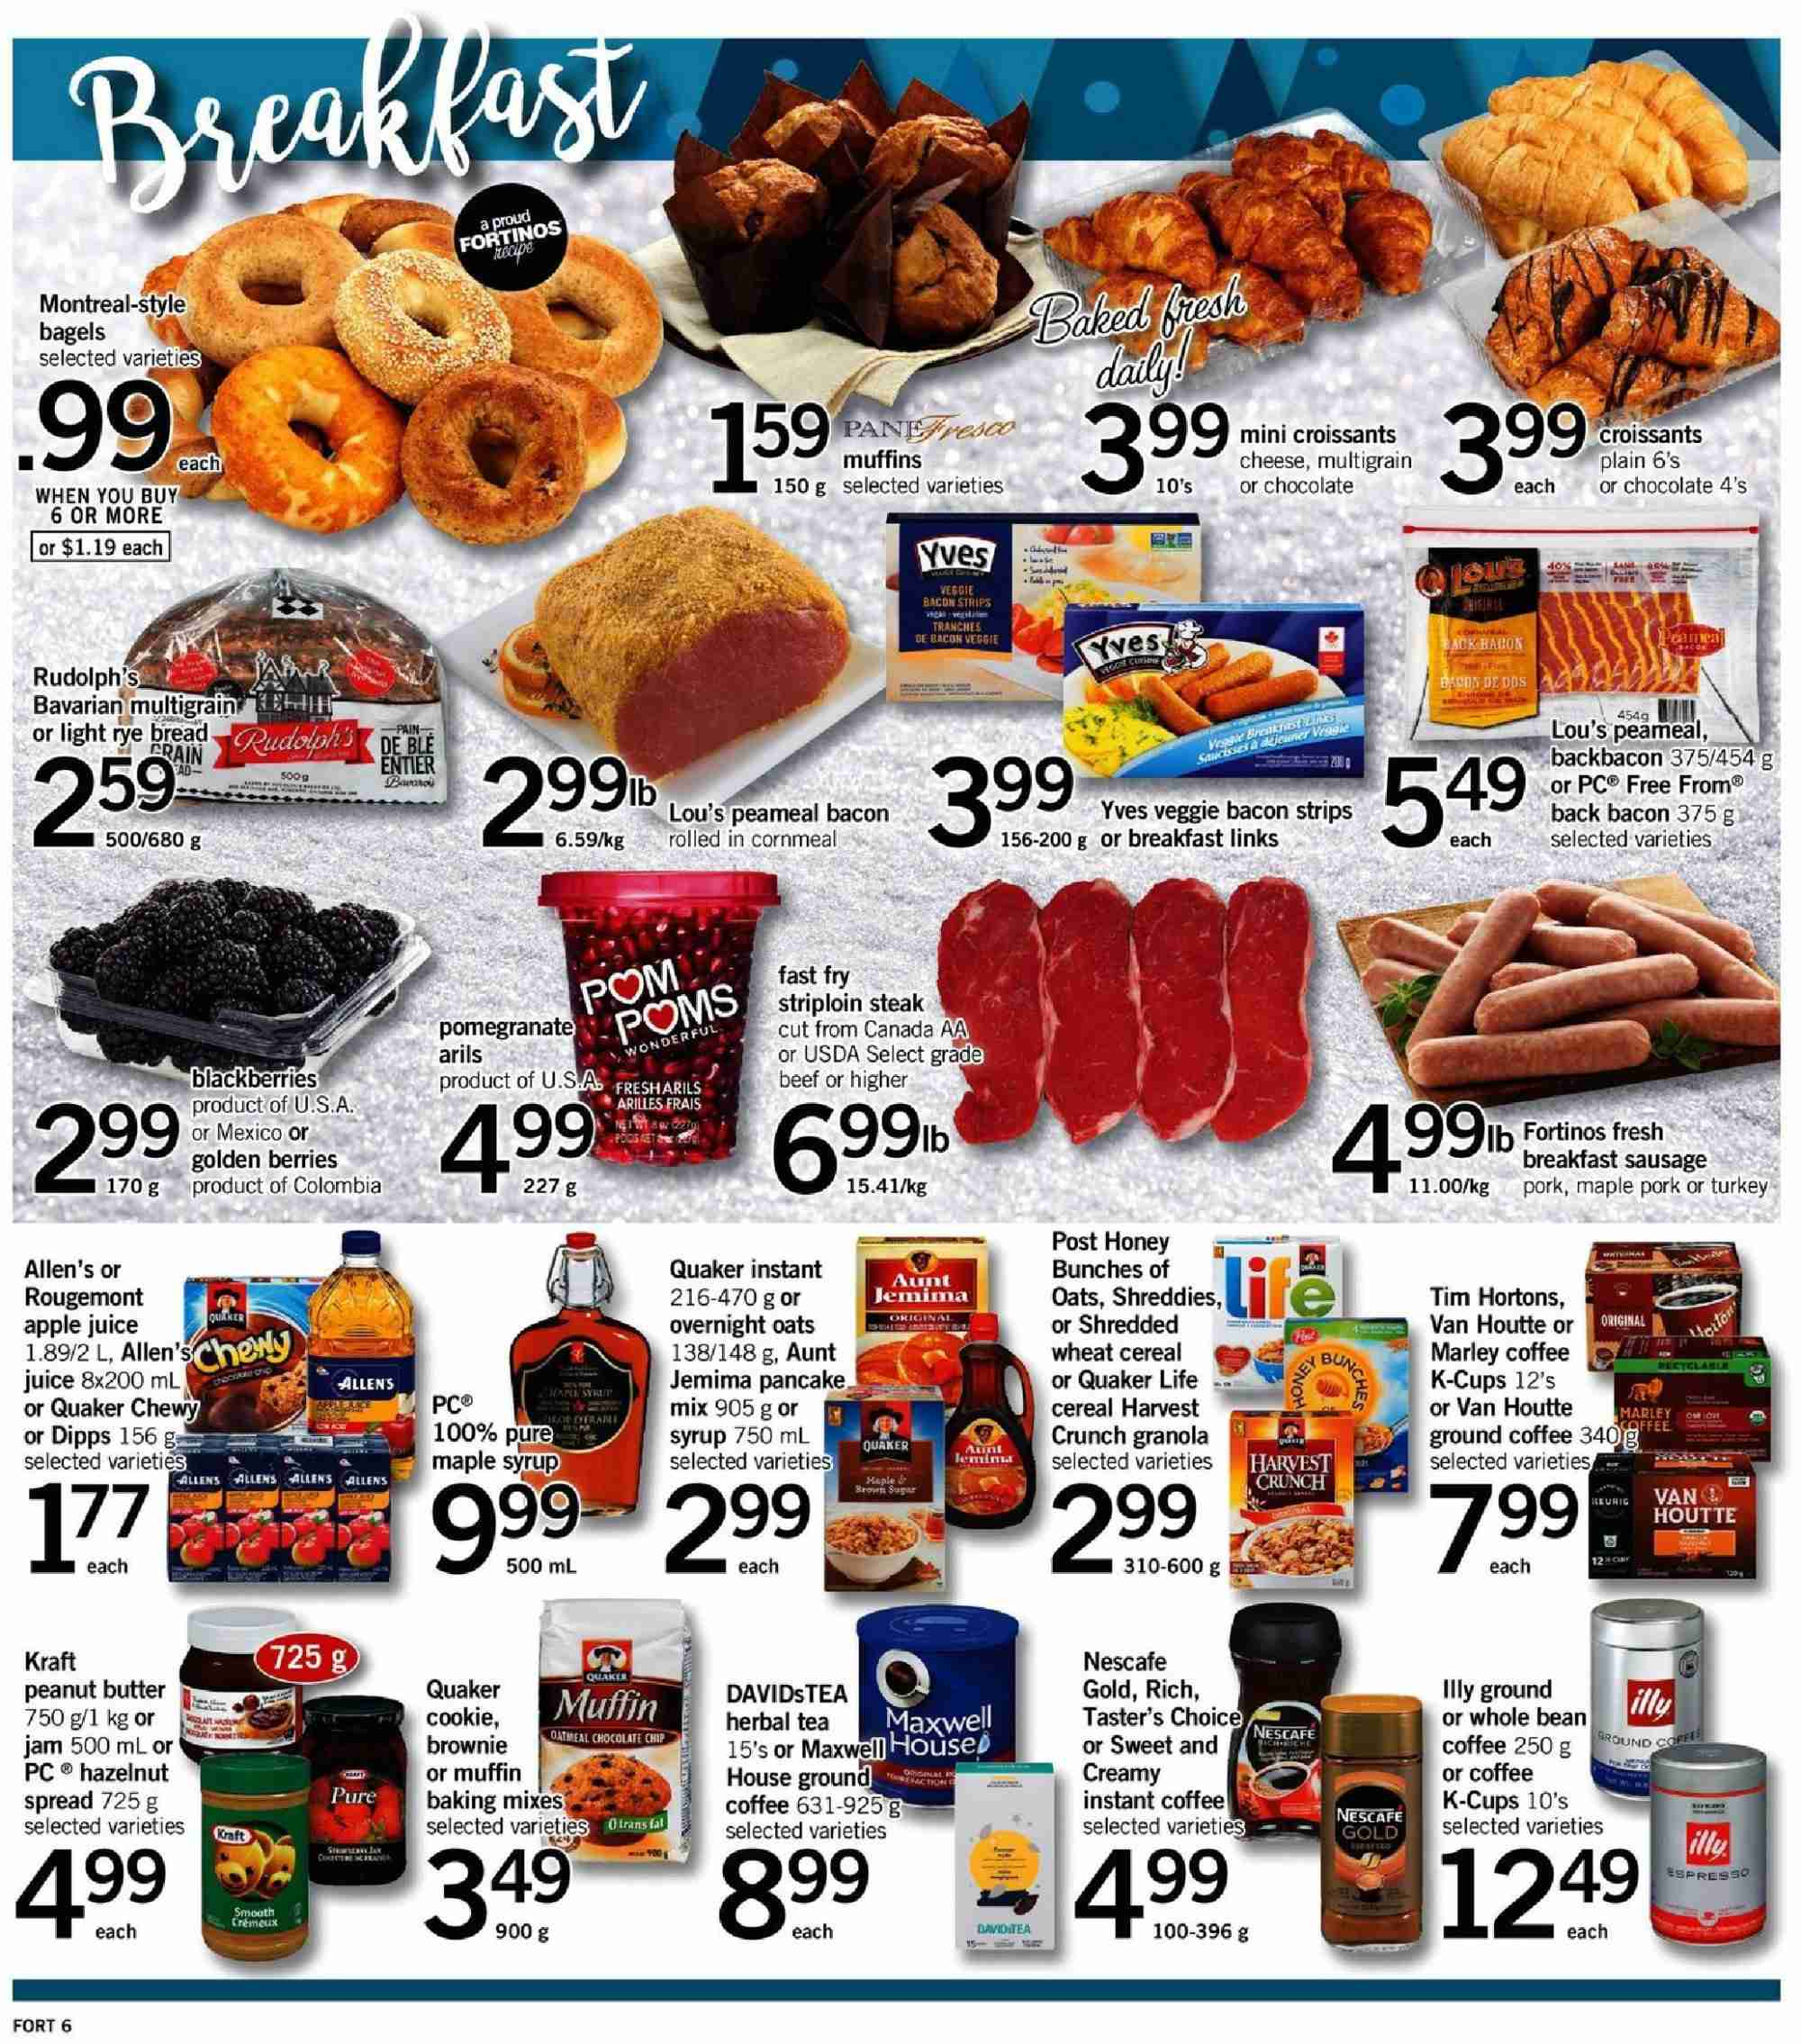 Fortinos Flyer  - December 27, 2018 - January 02, 2019. Page 6.